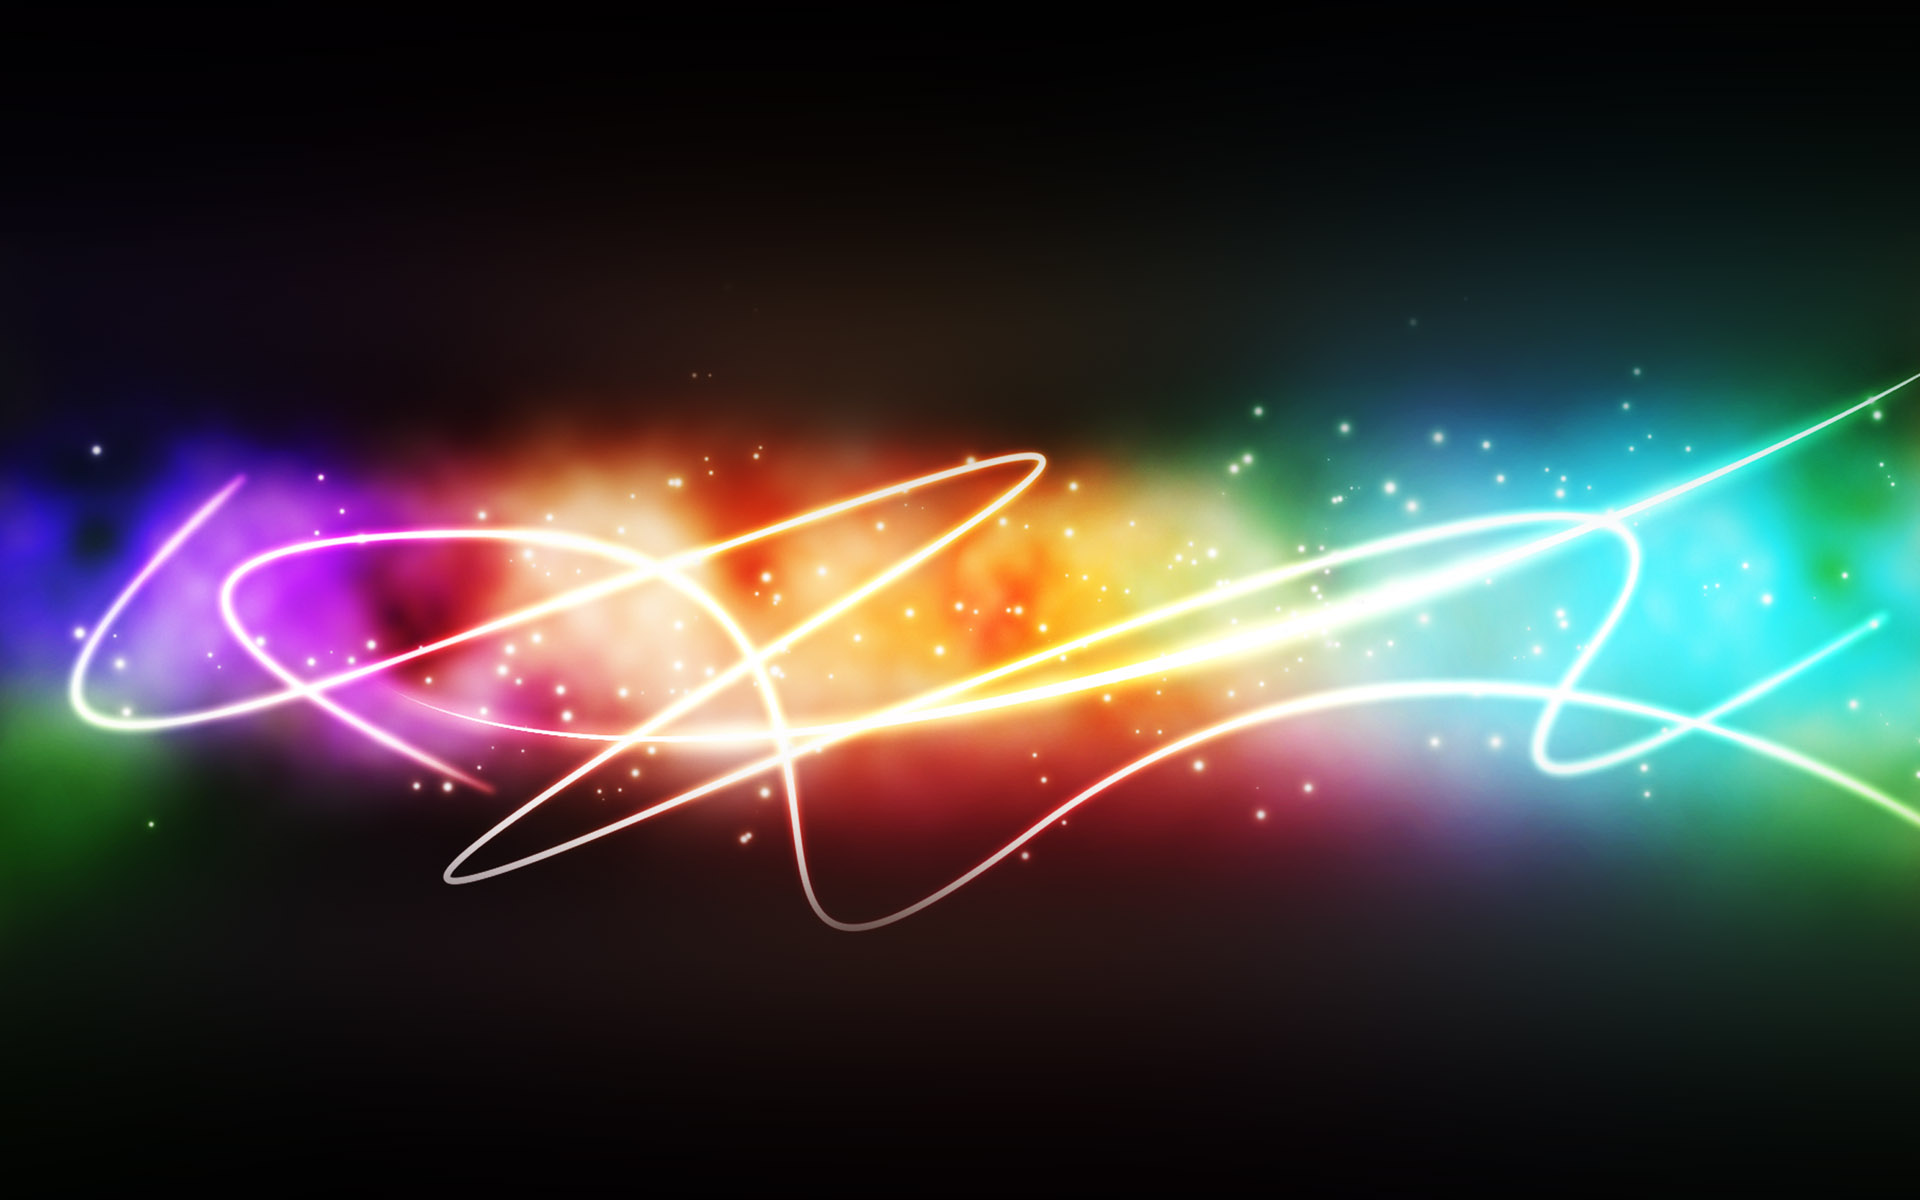 HD color background wallpaper 19104